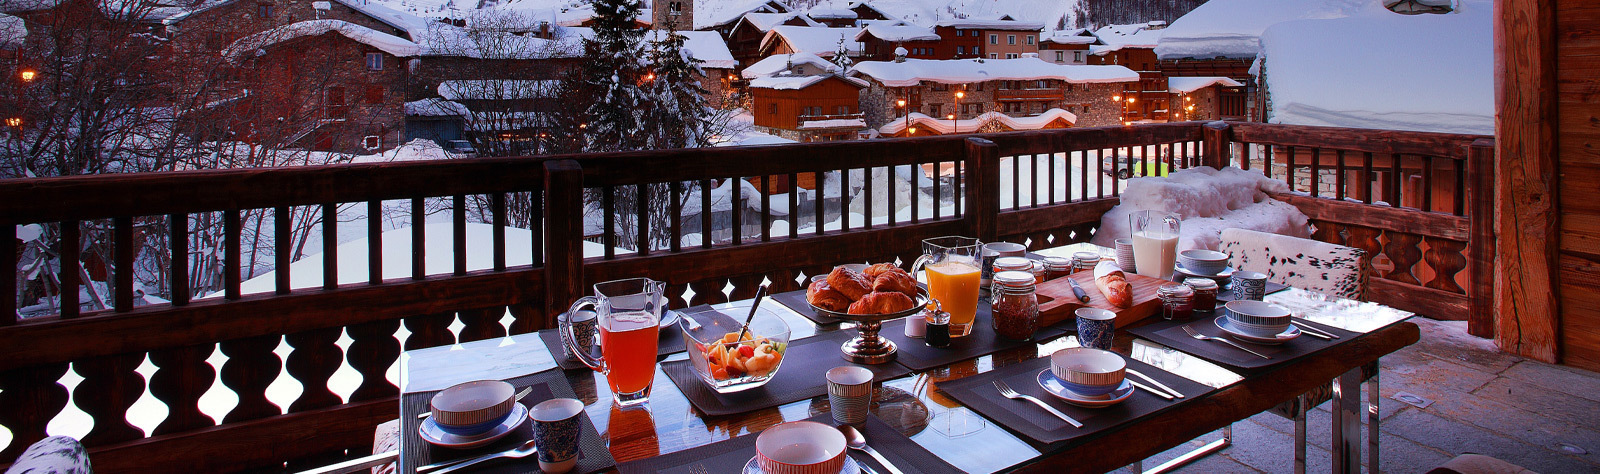 Madonna di Campiglio accommodations